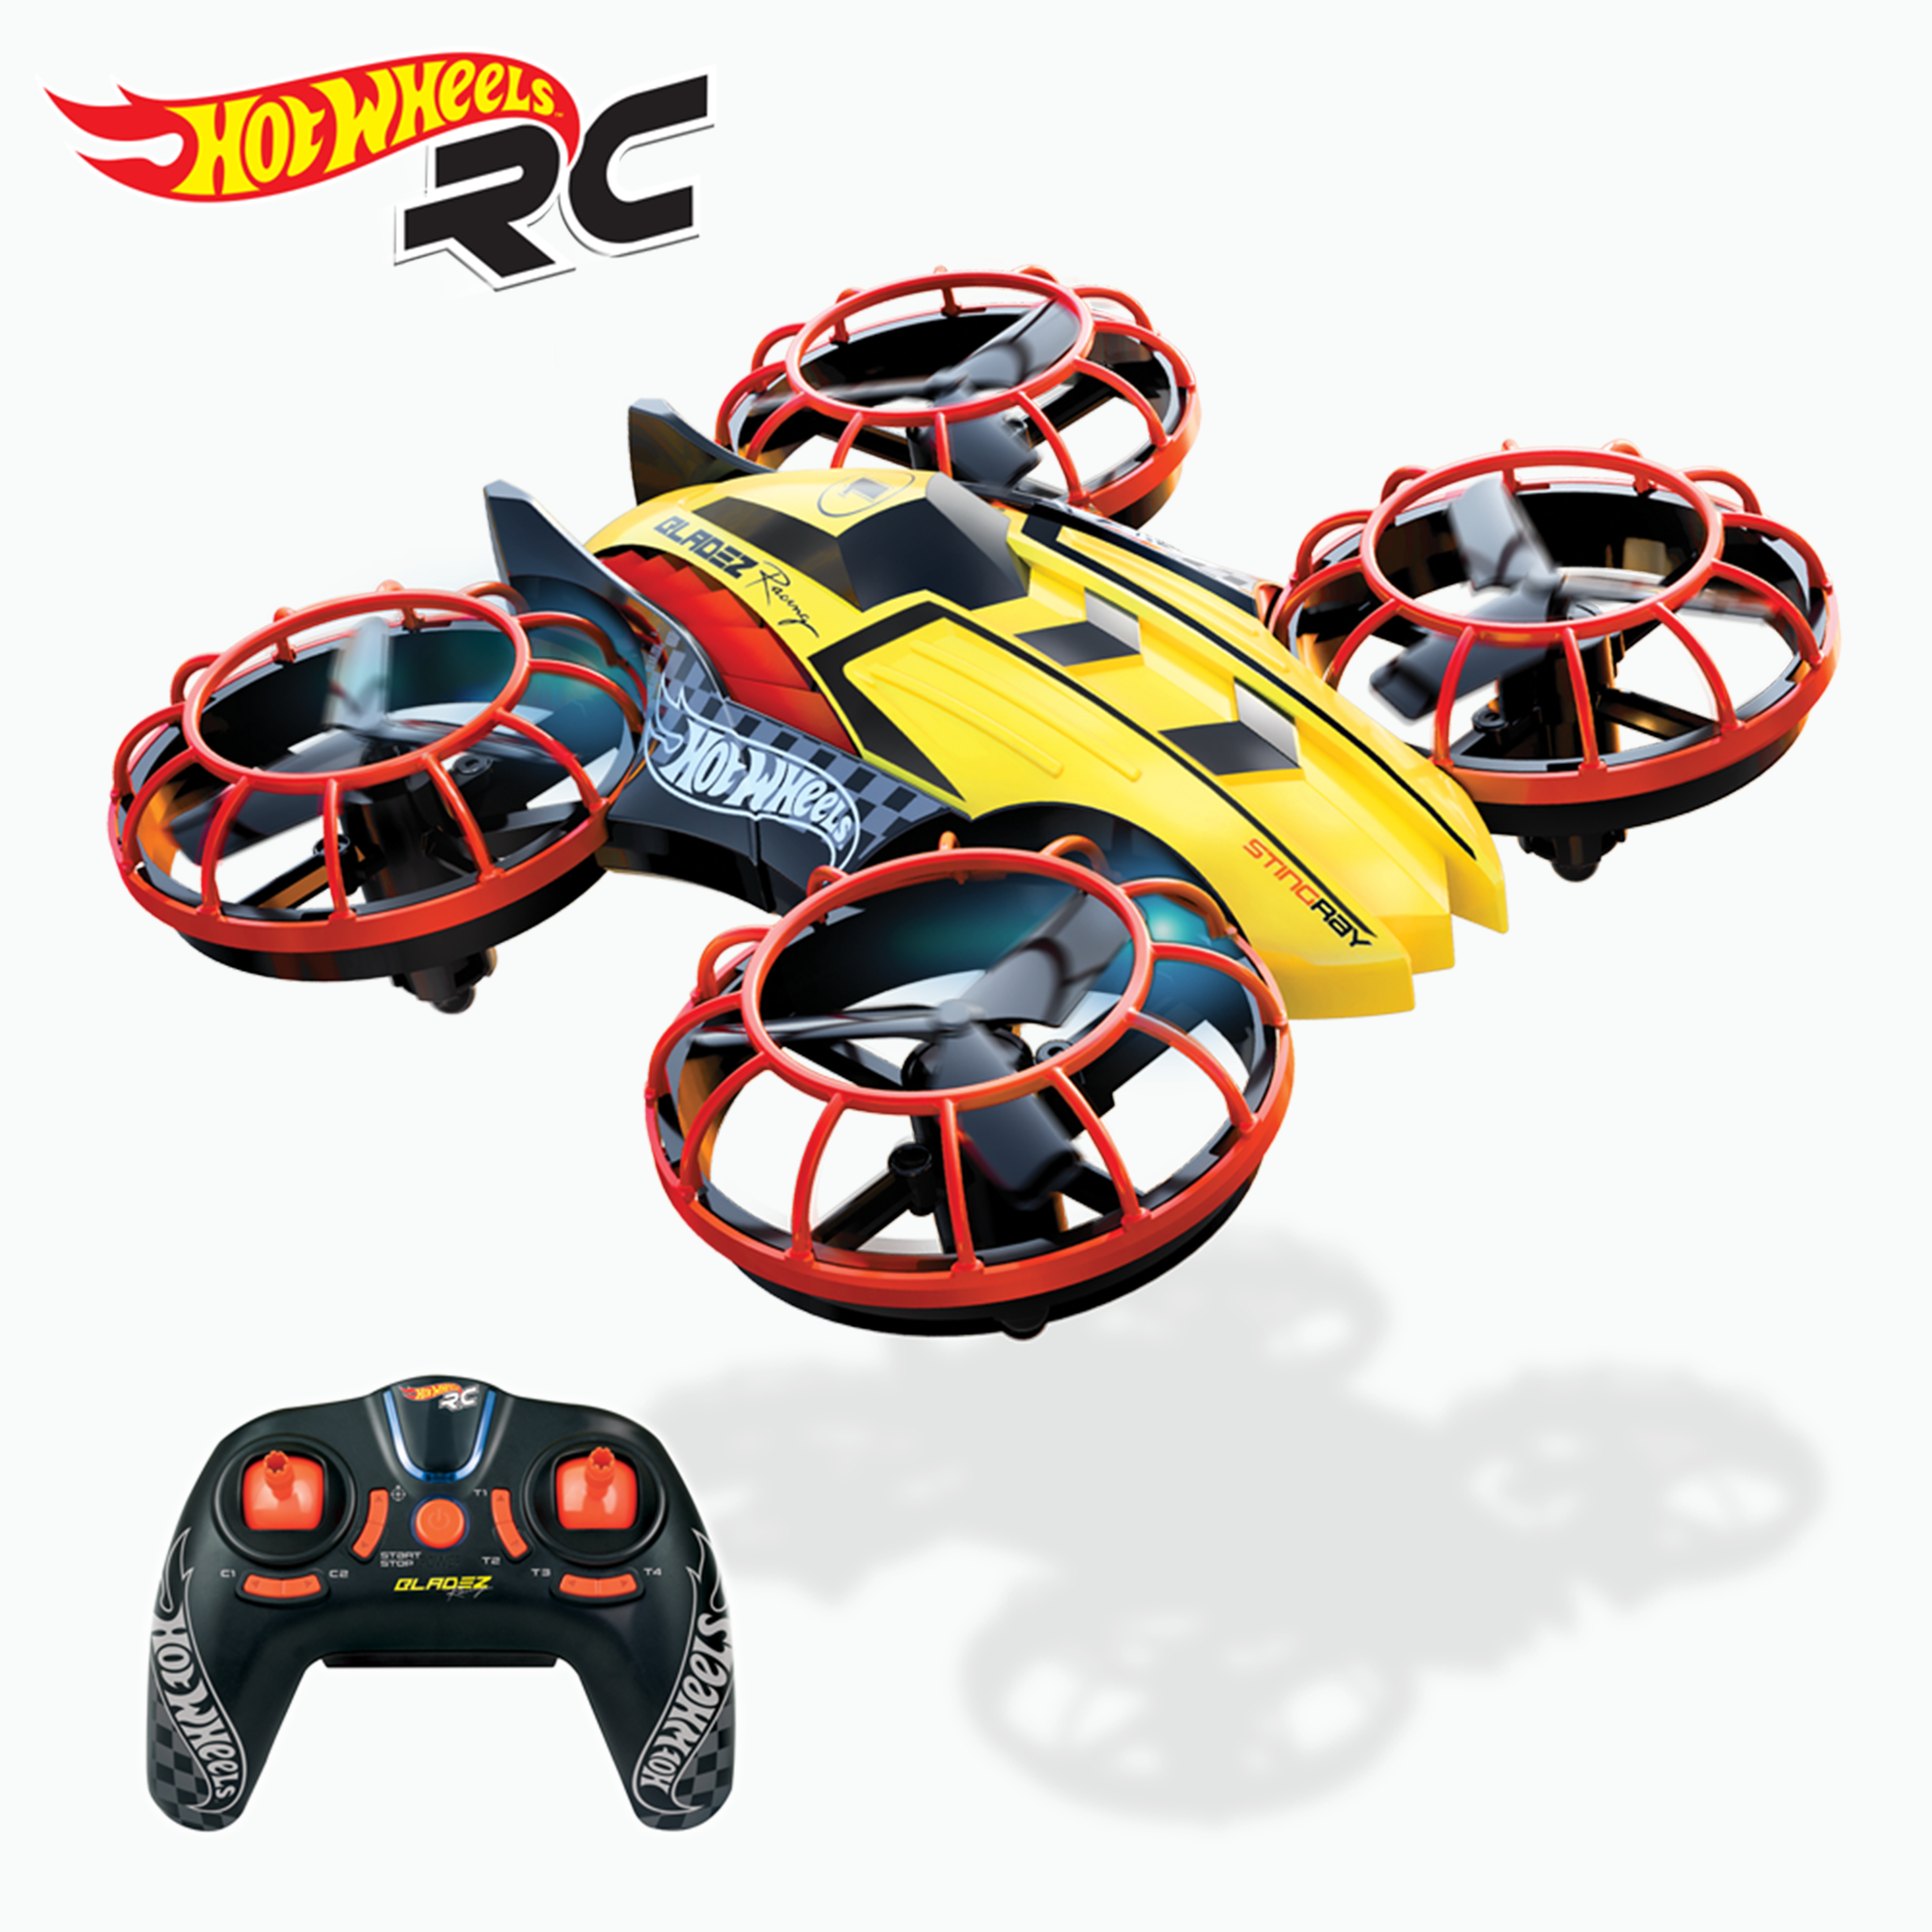 bladez rc helicopter with Hot Wheels Rc Bladez Drone Racerz 1 on R C Mycropodz Quadcopter additionally Gadgets moreover Hot Wheels Rc Bladez Drone Racerz 1 additionally Bladez Target Gameplay besides R C Inflatable Teletubbies Po.